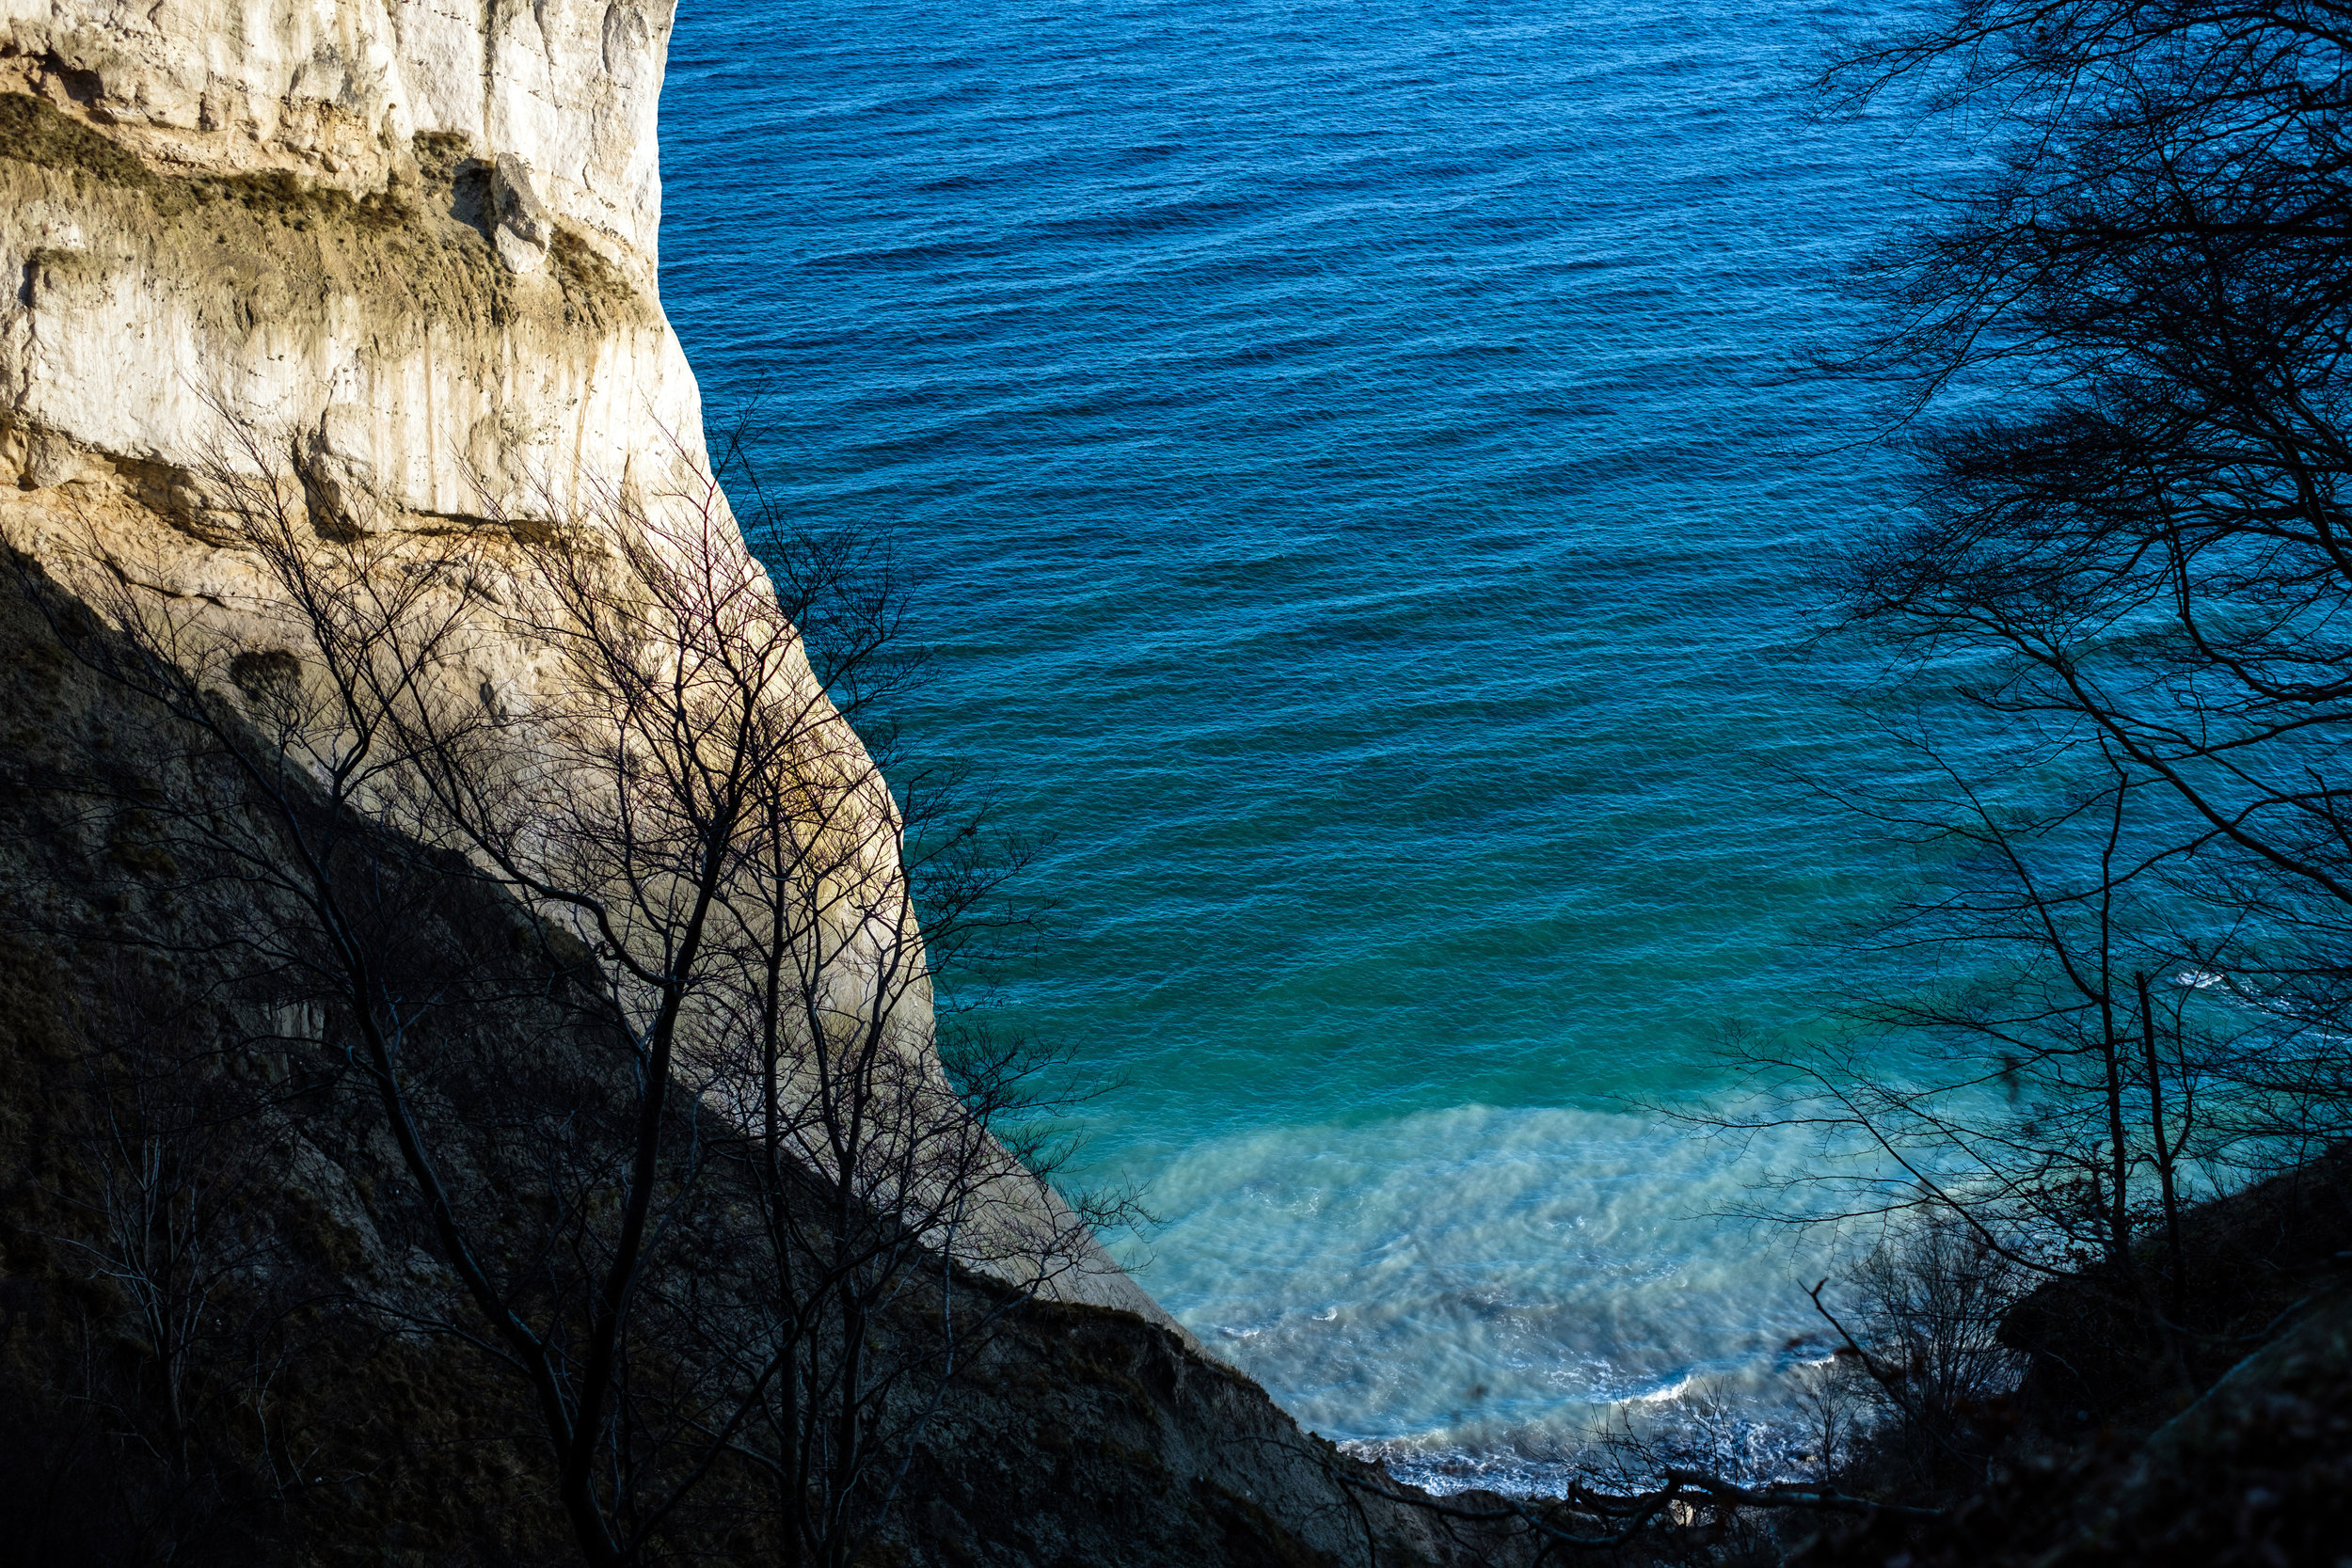 Møns Klint, Cliffs of Moen, and the Baltic Sea in Denmark